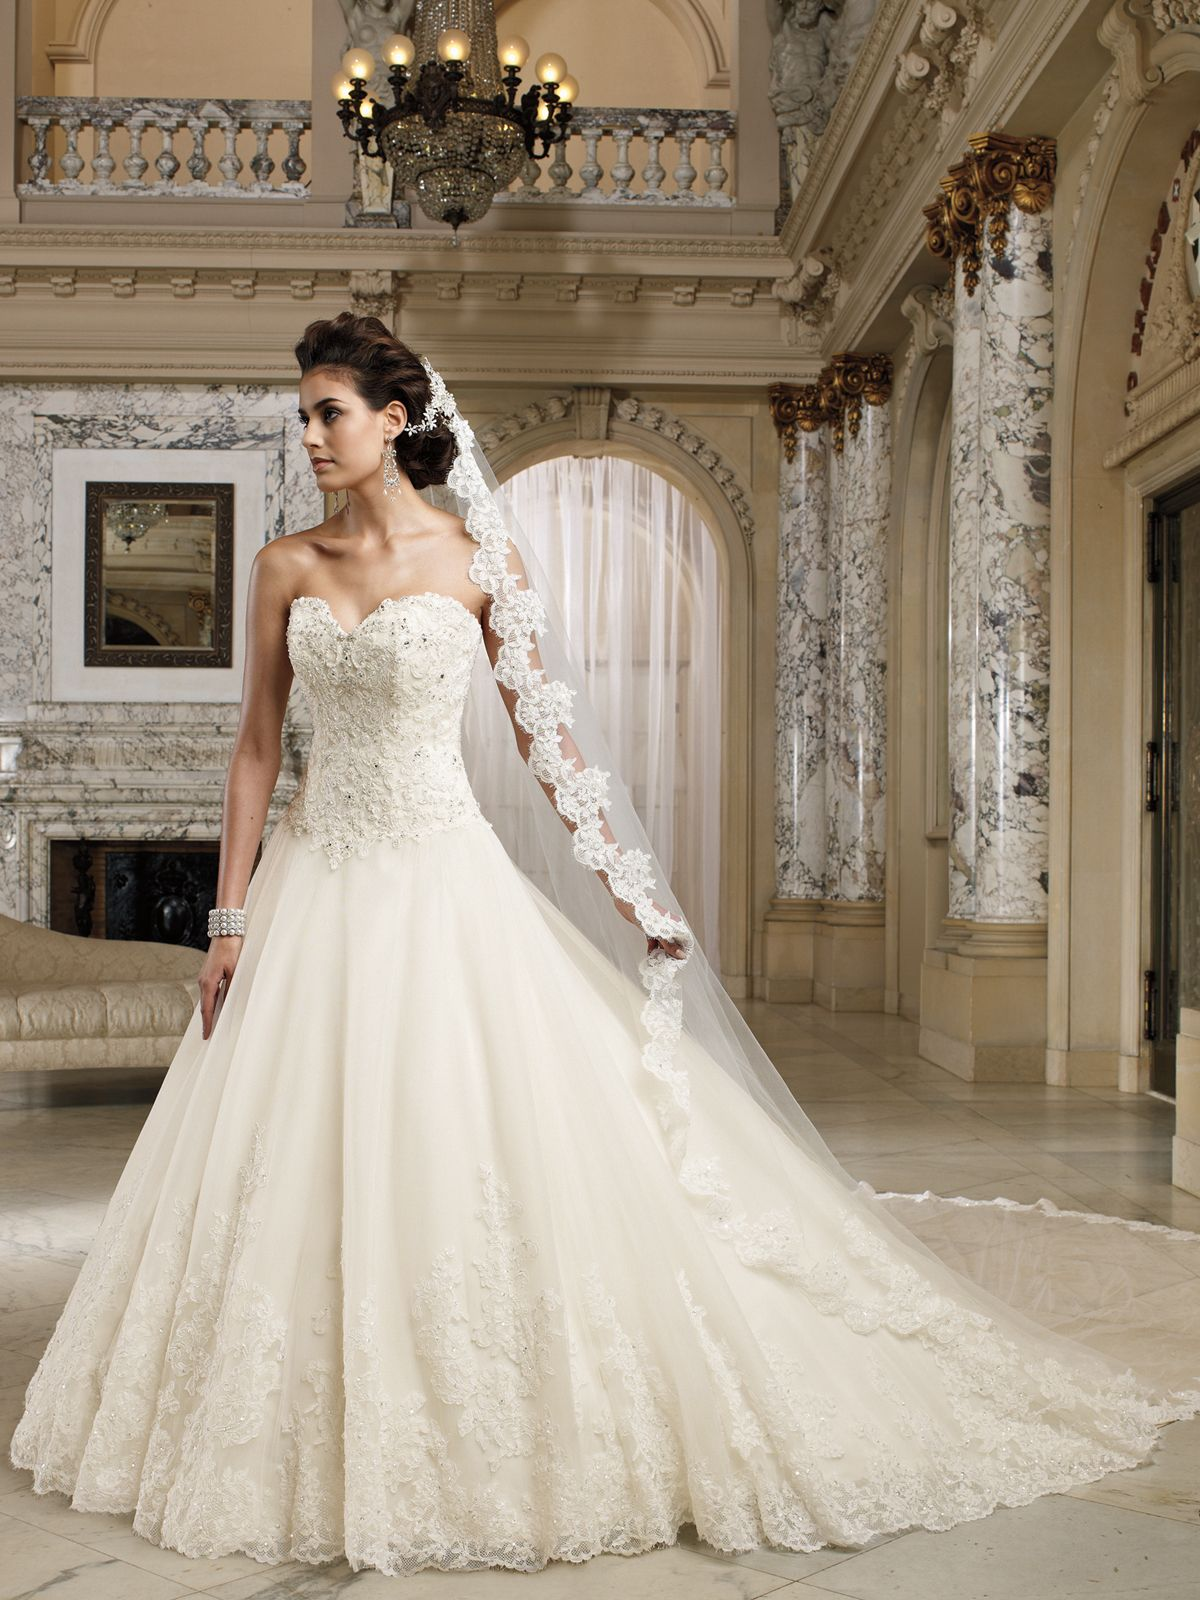 Lace sweetheart wedding dress  Wedding dresses and bridals gowns by David Tutera for Mon Cheri for